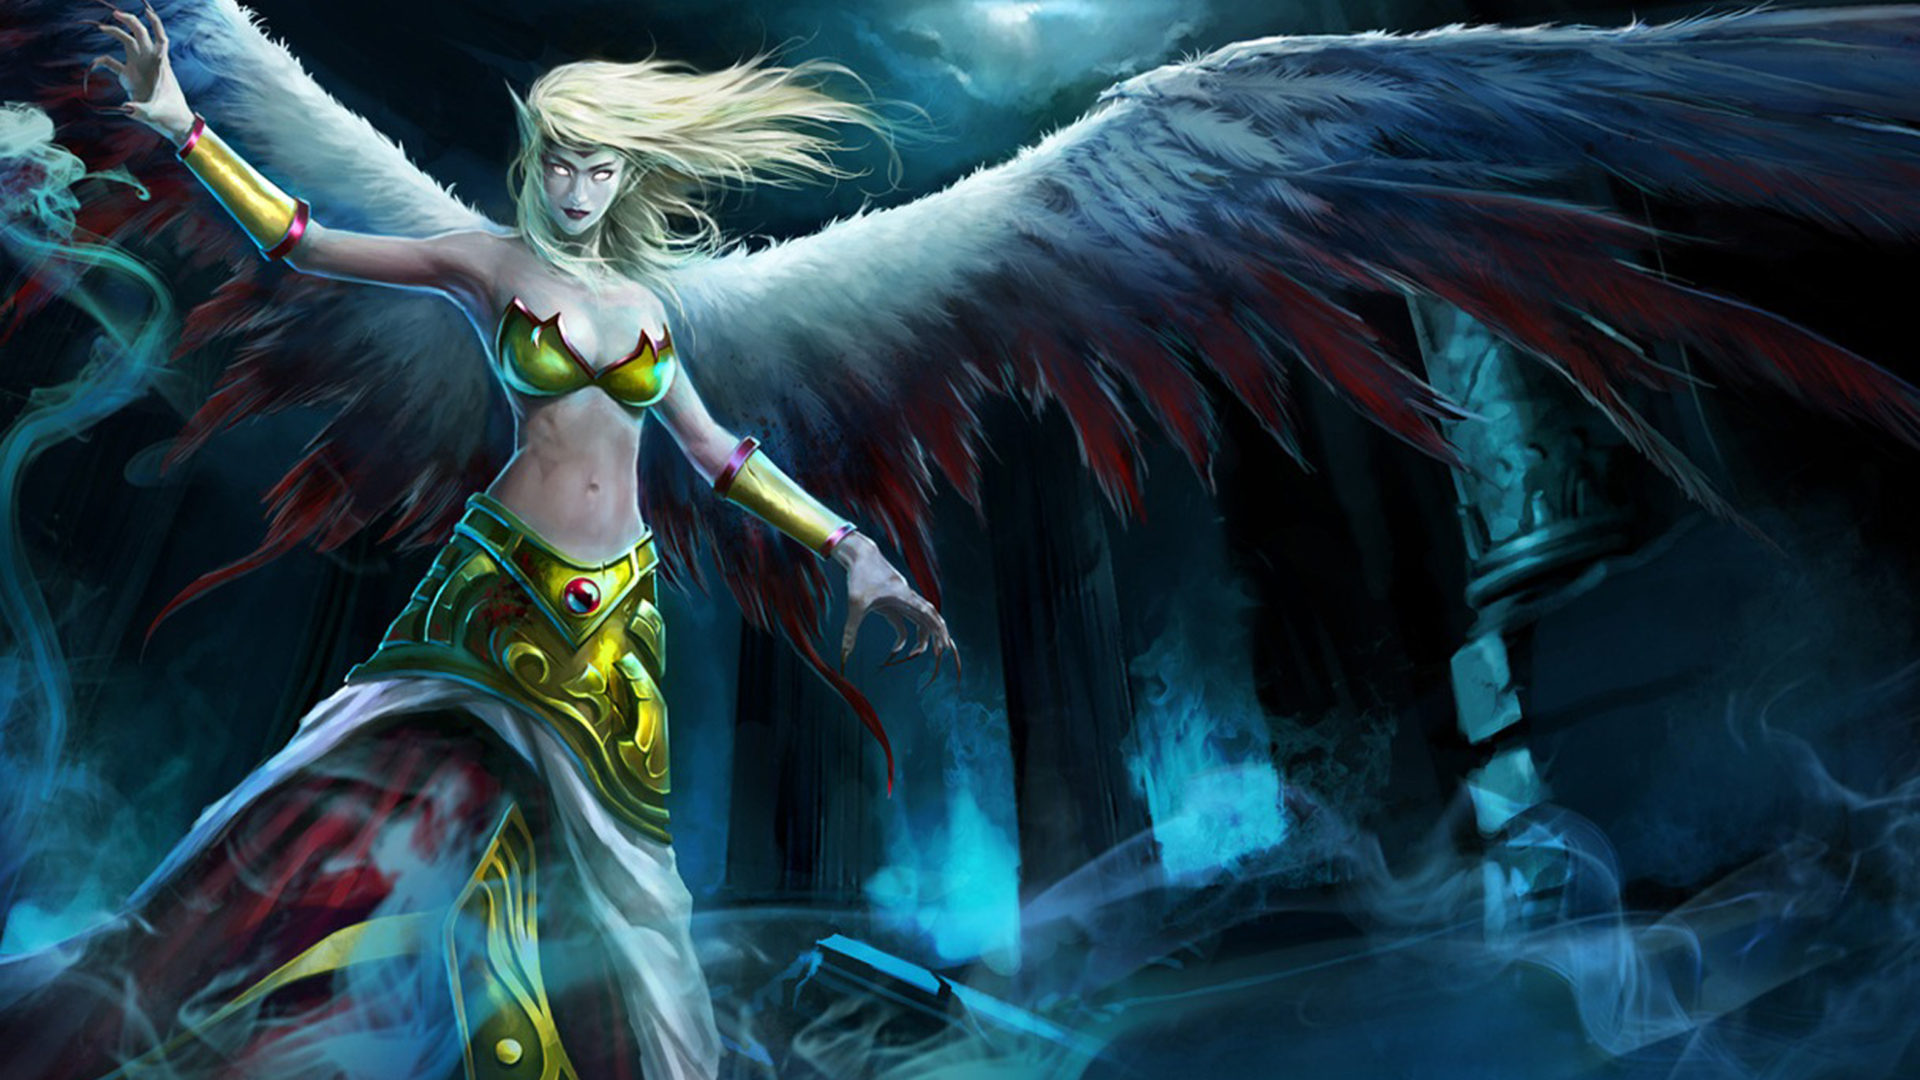 Colourful Wallpapers Hd For Android League Of Legends Video Games Fallen Angel Exiled Morgana